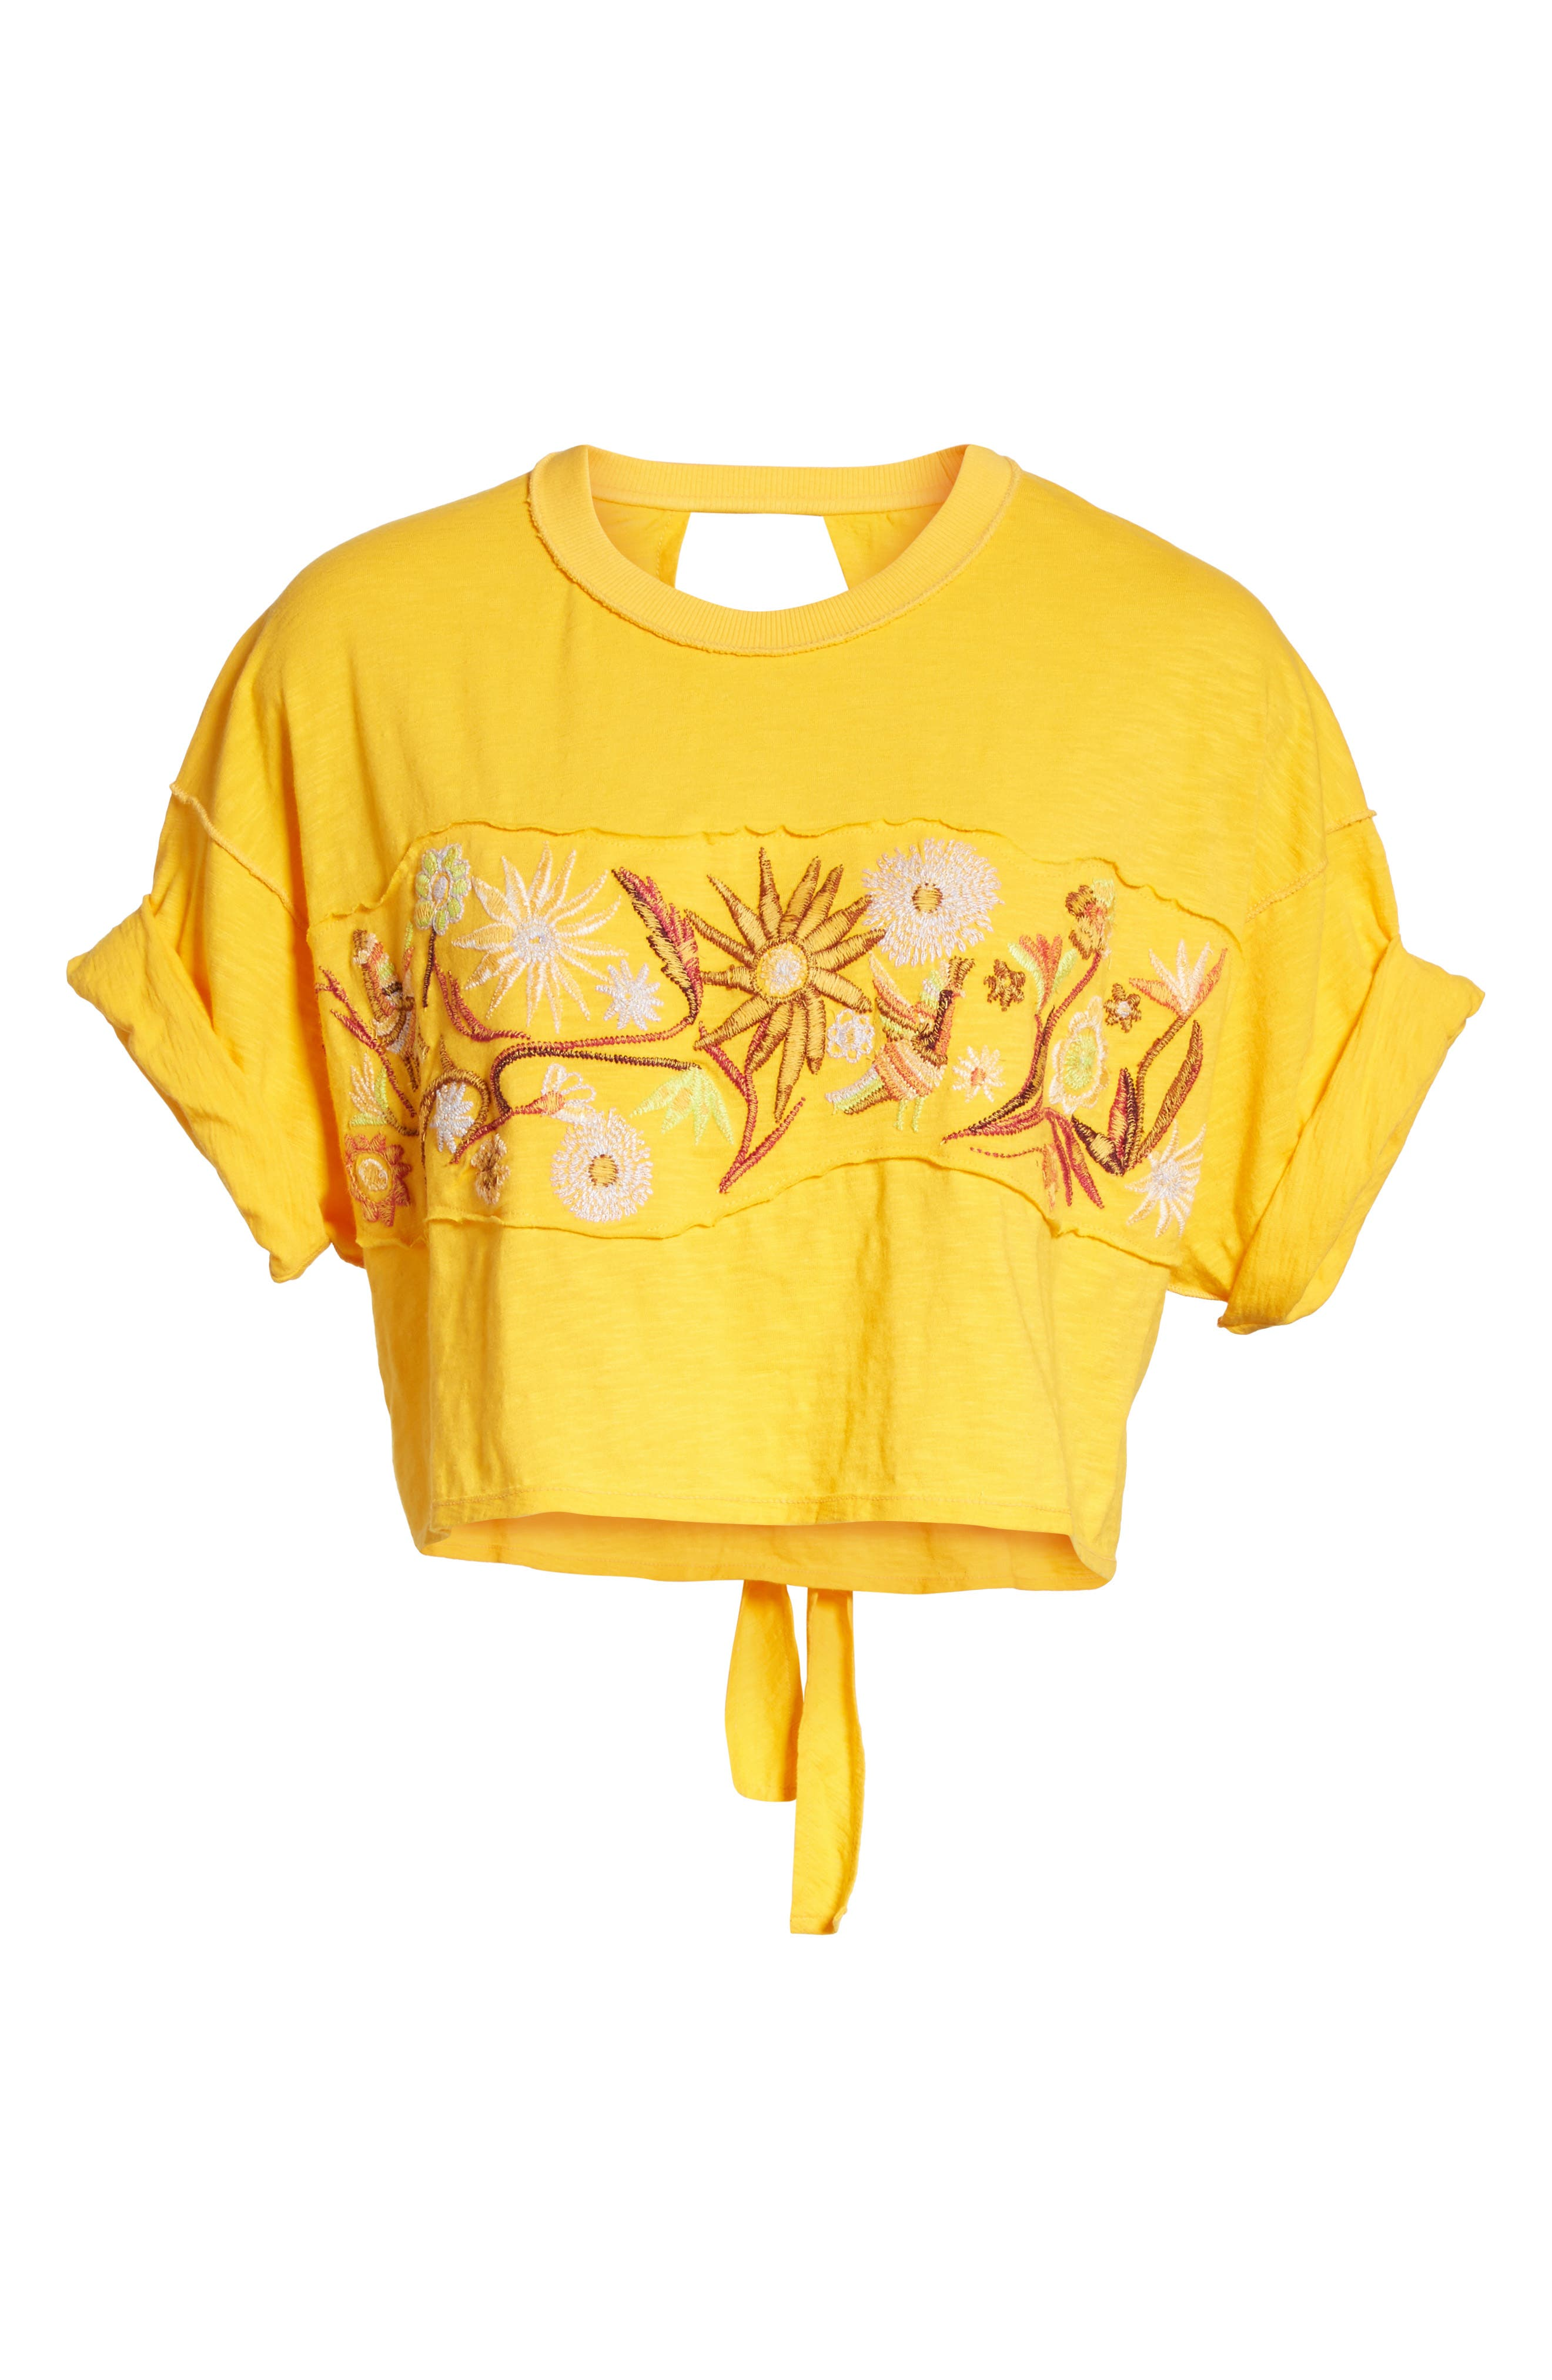 Garden Time Embroidered Tee,                             Alternate thumbnail 6, color,                             Yellow